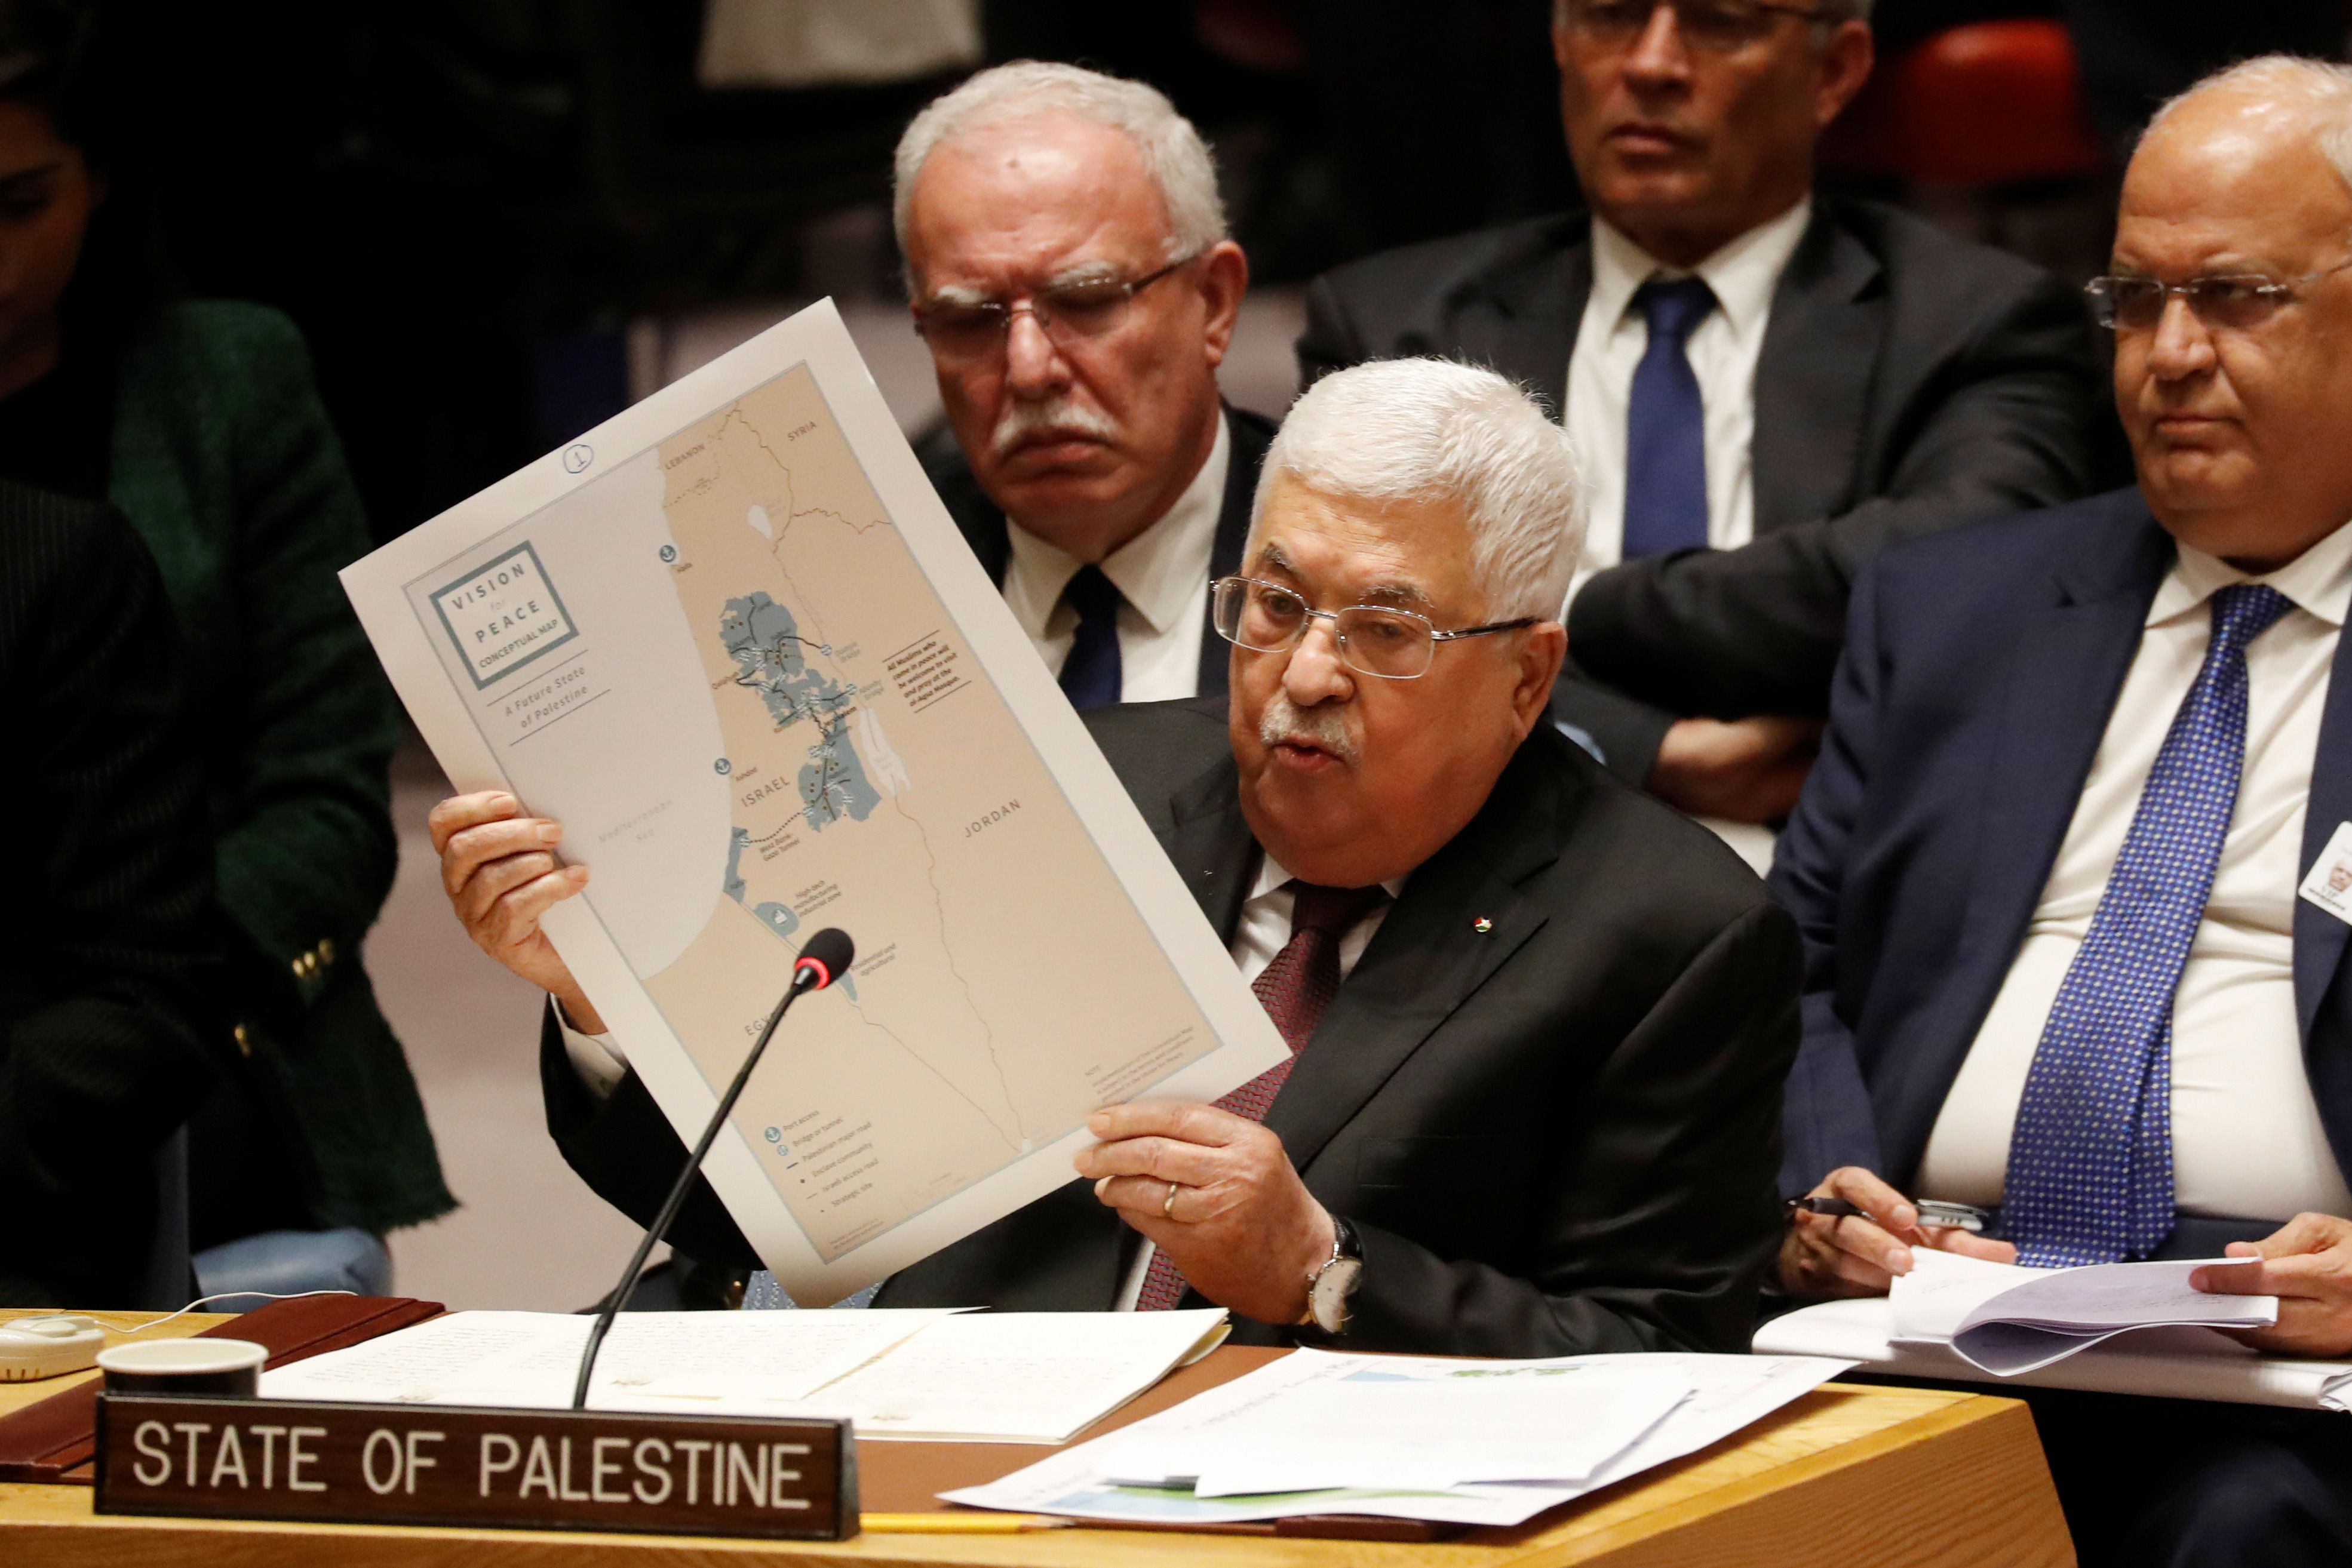 Palestinian President Mahmoud Abbas holds a document while speaking during a Security Council meeting at the United Nations in New York on Tuesday. (PHOTO: Reuters)